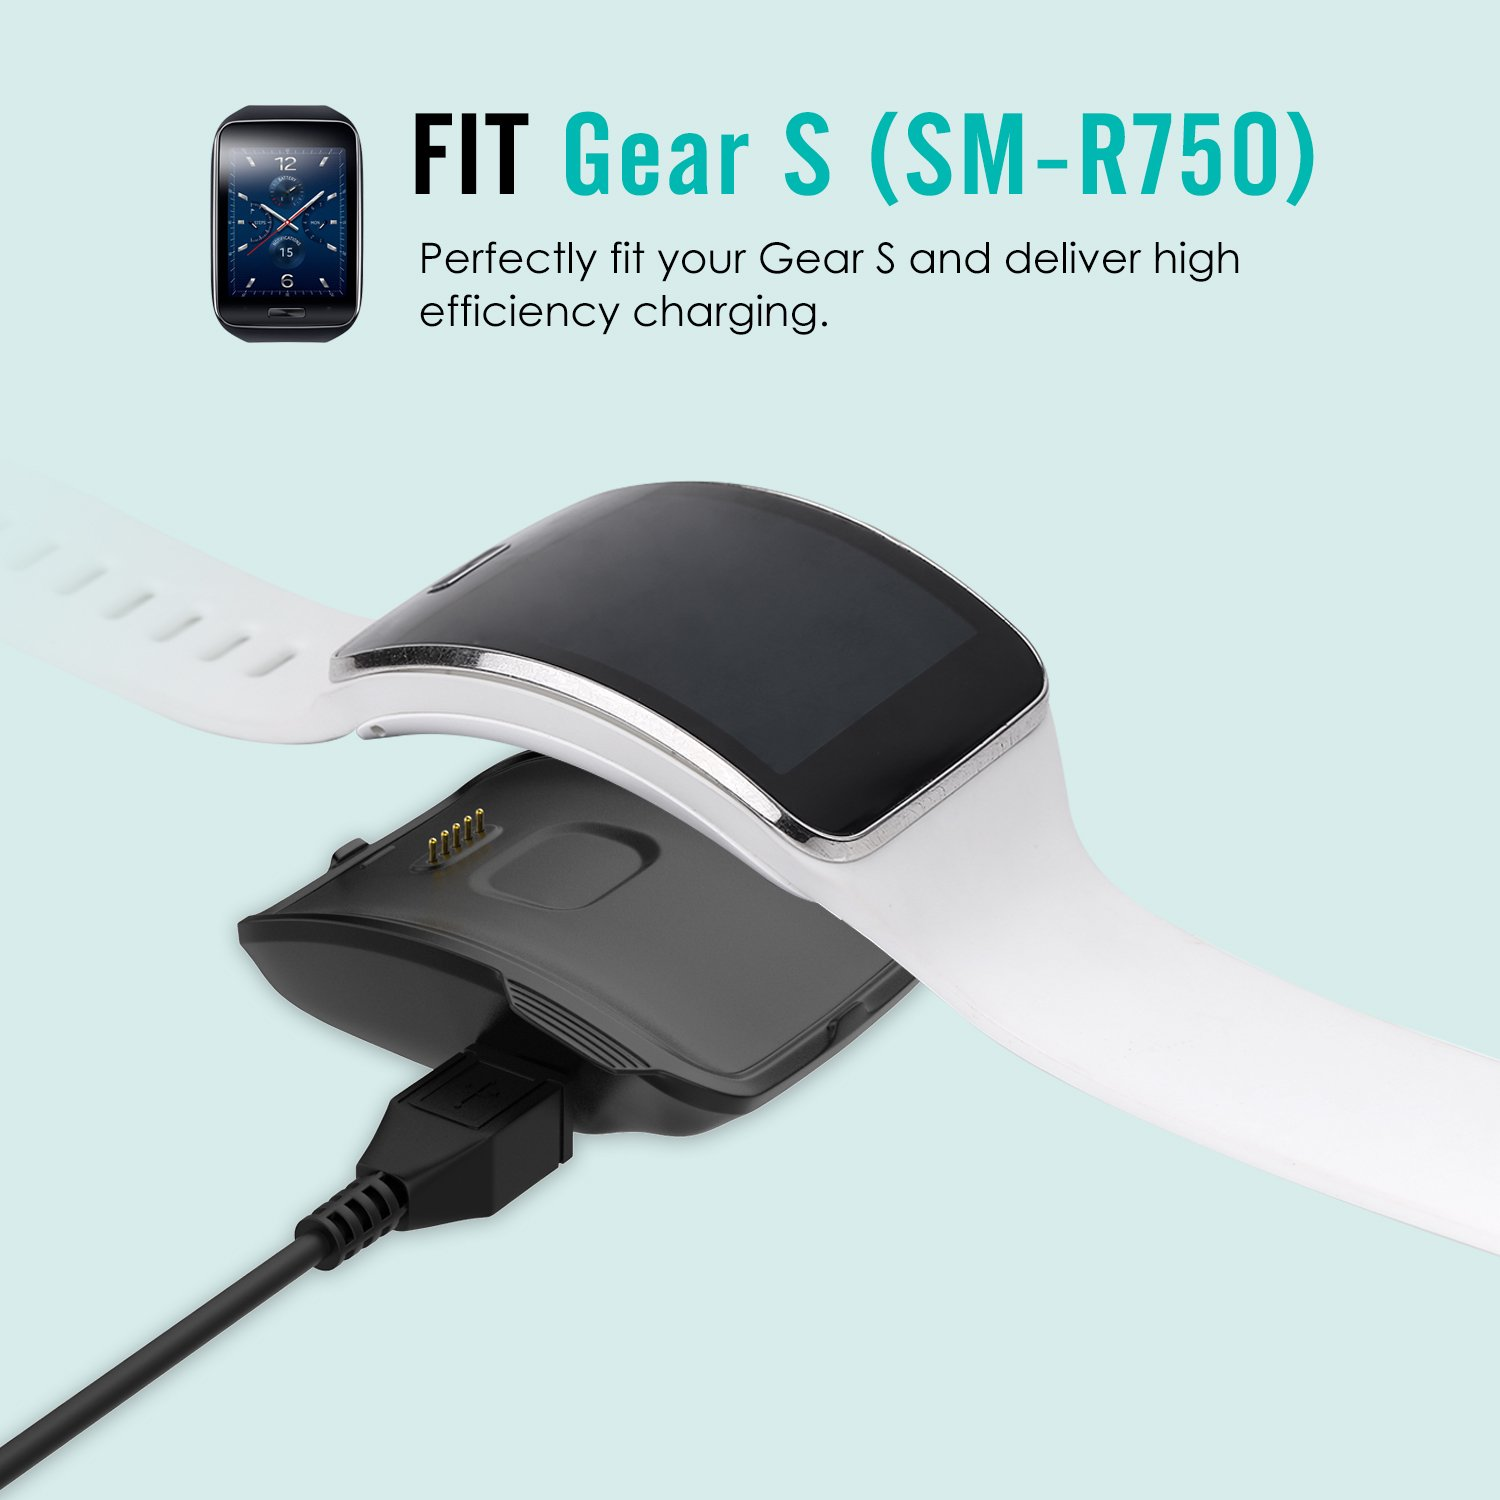 <font><b>Gear</b></font> <font><b>S</b></font> (SM-R750) Charger, Replacement <font><b>Charging</b></font> <font><b>Dock</b></font> Cradle Charger for <font><b>Samsung</b></font> <font><b>Gear</b></font> <font><b>S</b></font> Smart Watch SM-R750, with Micro USB Cable image